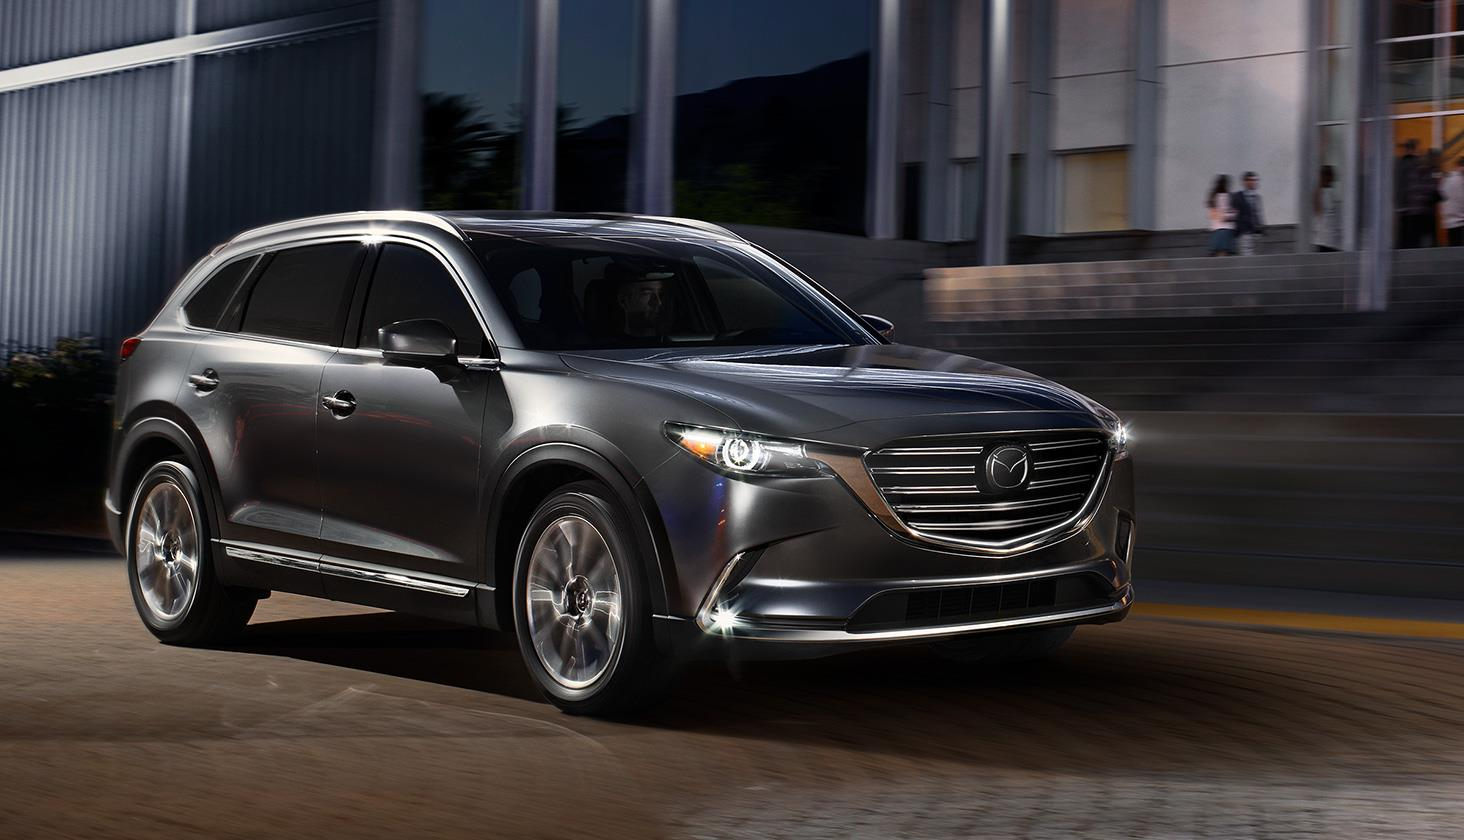 3. Mazda CX-9 - MAKINAS